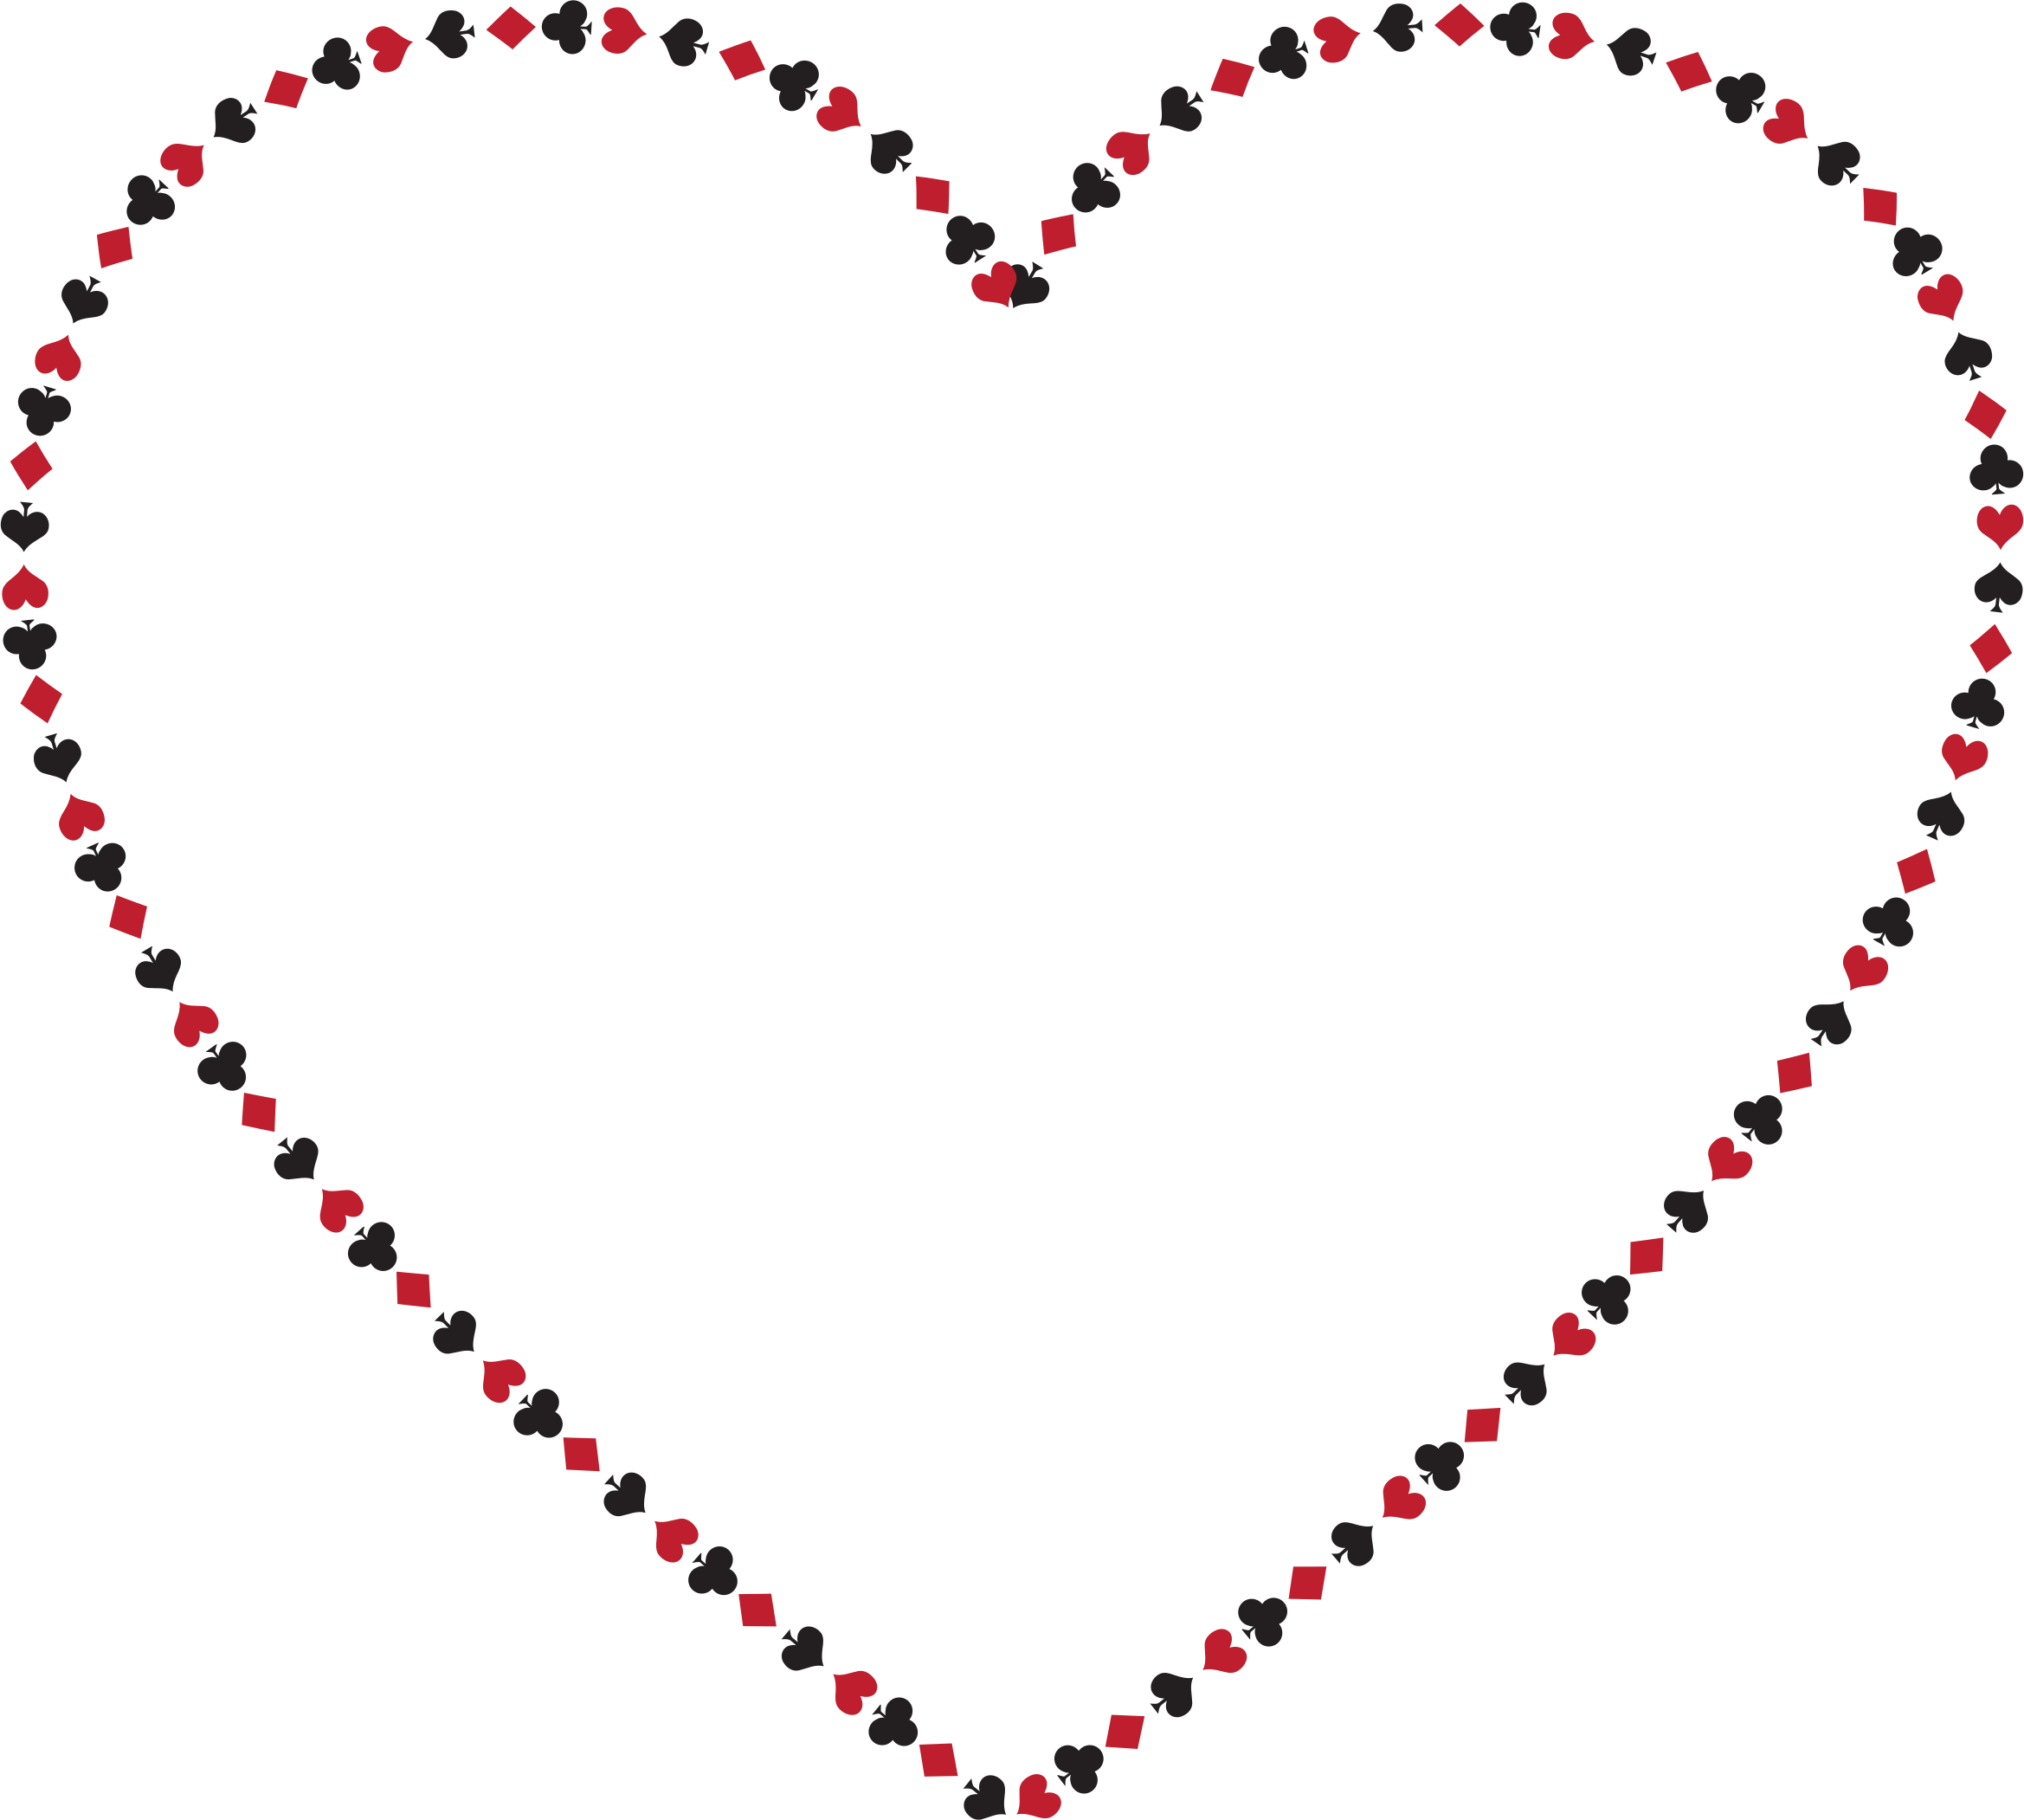 Heart card clipart clipart download Clipart - Card Suits Heart clipart download